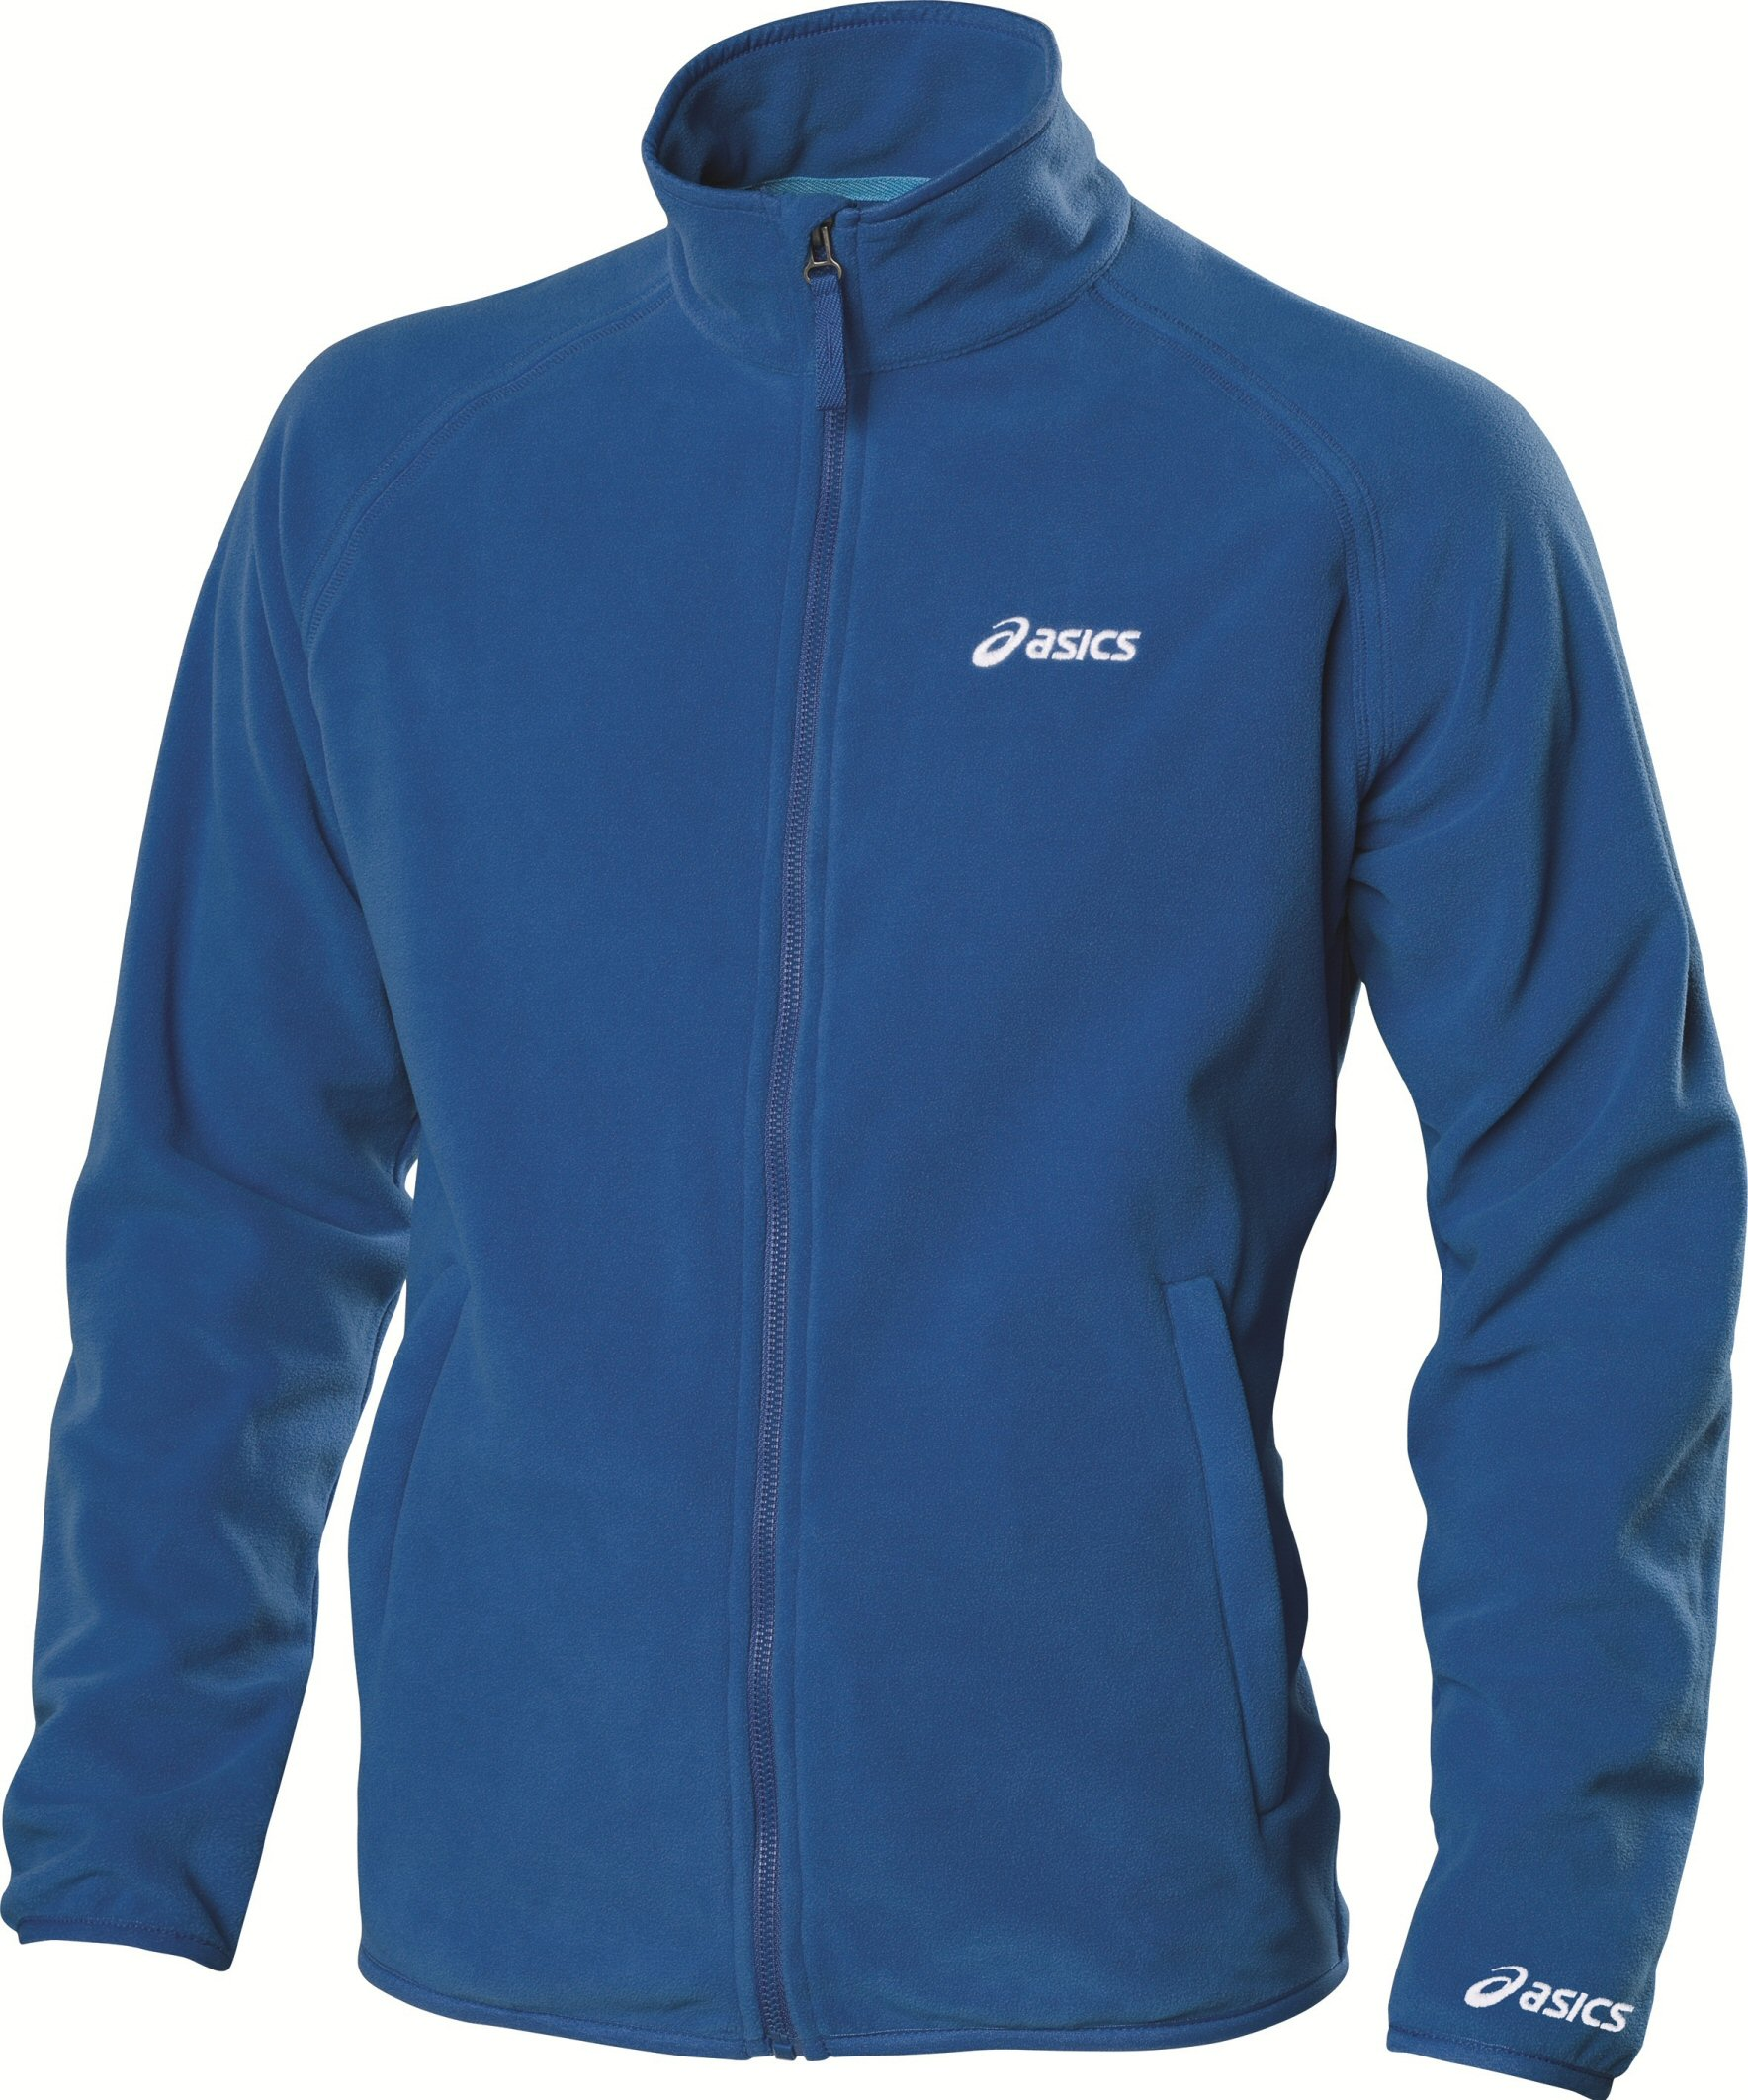 Jacke polar fleece blau